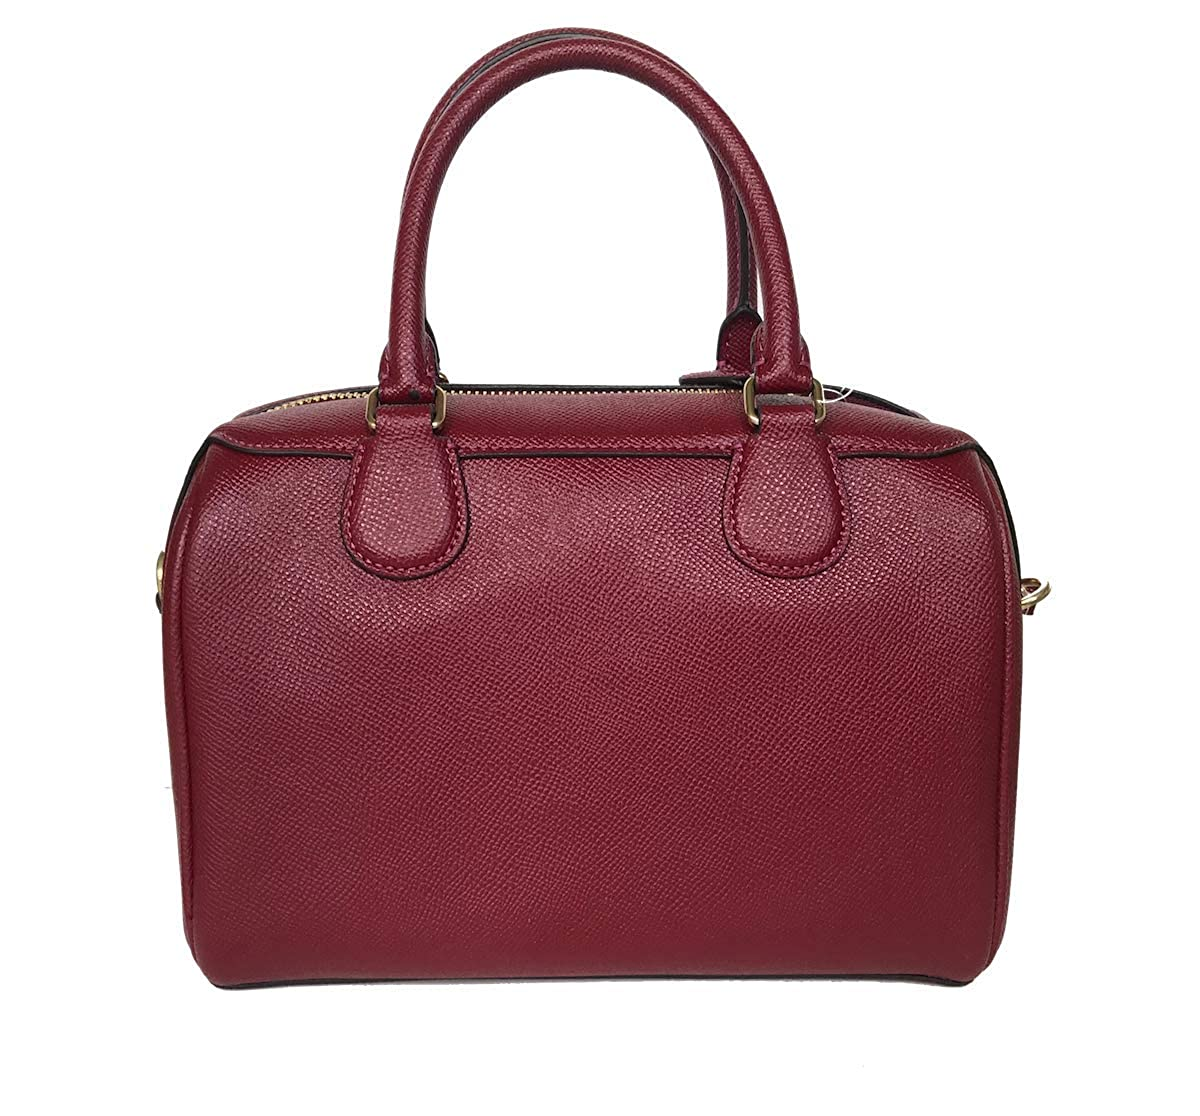 1367cc7e658fc Coach Leather Mini Bennett Shoulder Bag Handbag (Cherry)  Amazon.co.uk   Shoes   Bags